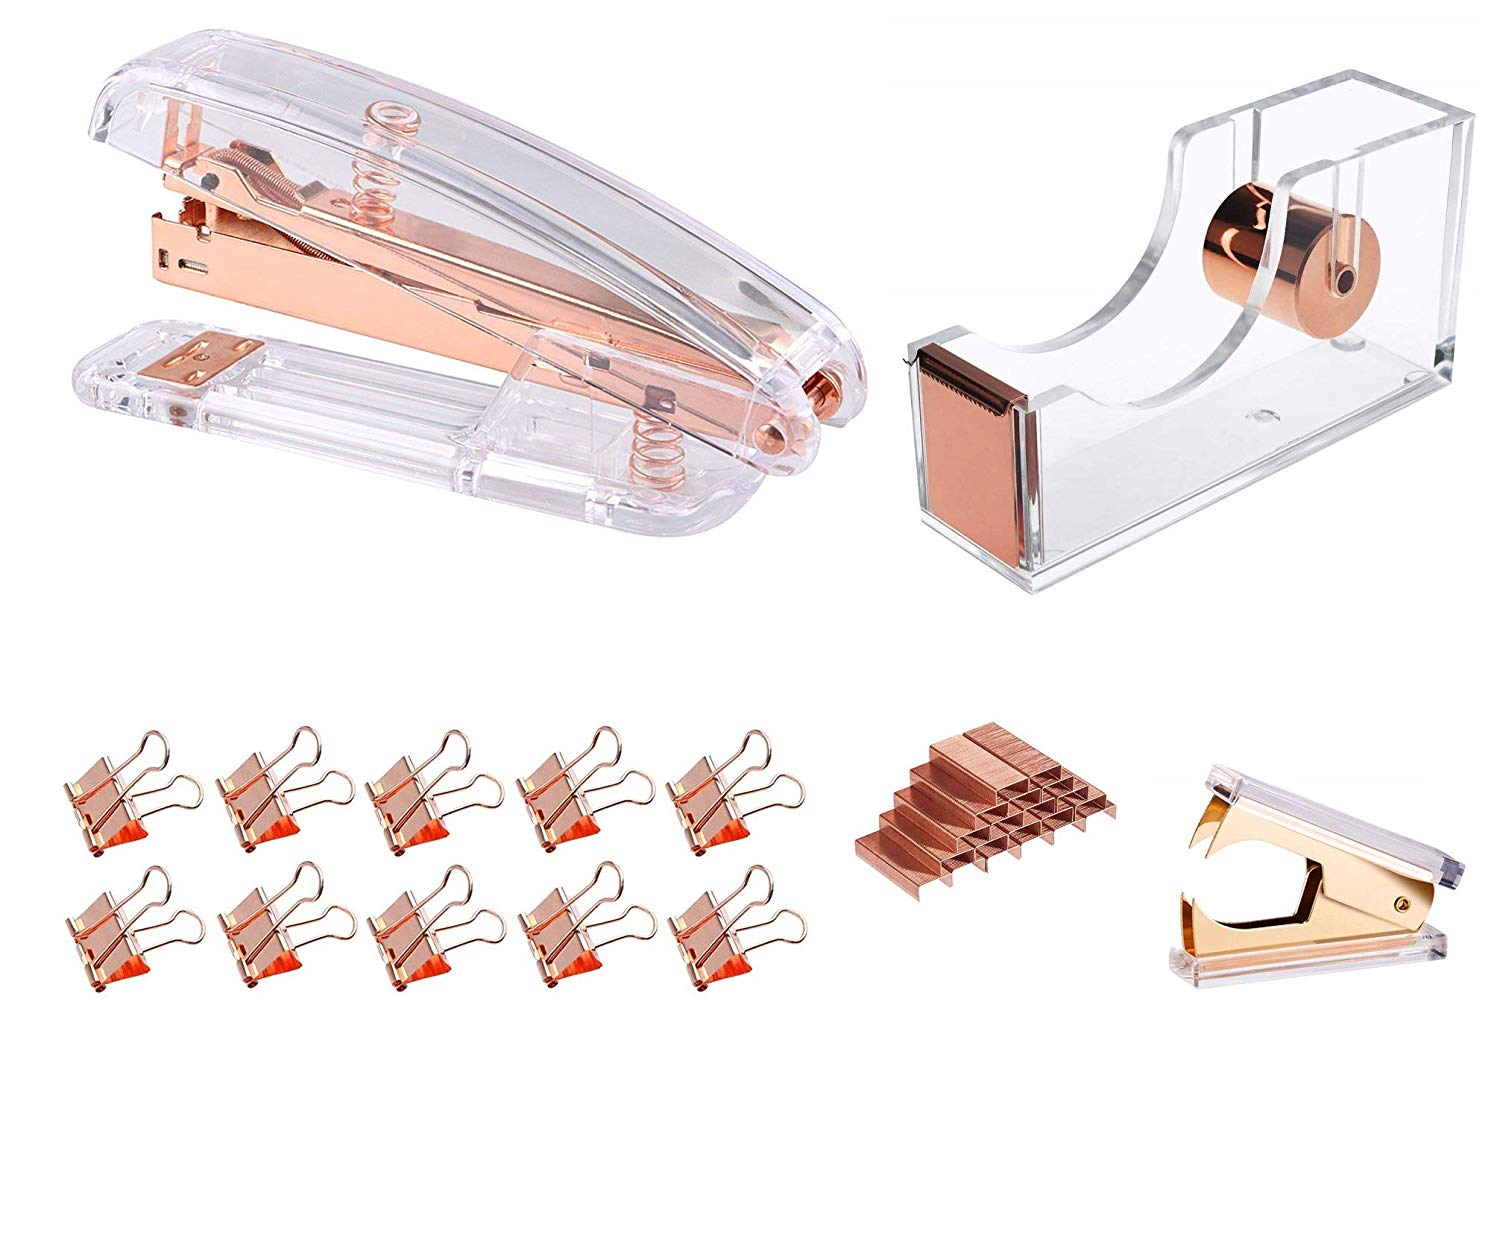 Modernlife Rose Gold Acrylic Stapler Bundle, Stapler and Staple Remover, Tape Dispenser, with 1000 Pcs Rose Gold Staples, 10 Pcs Binder Clips